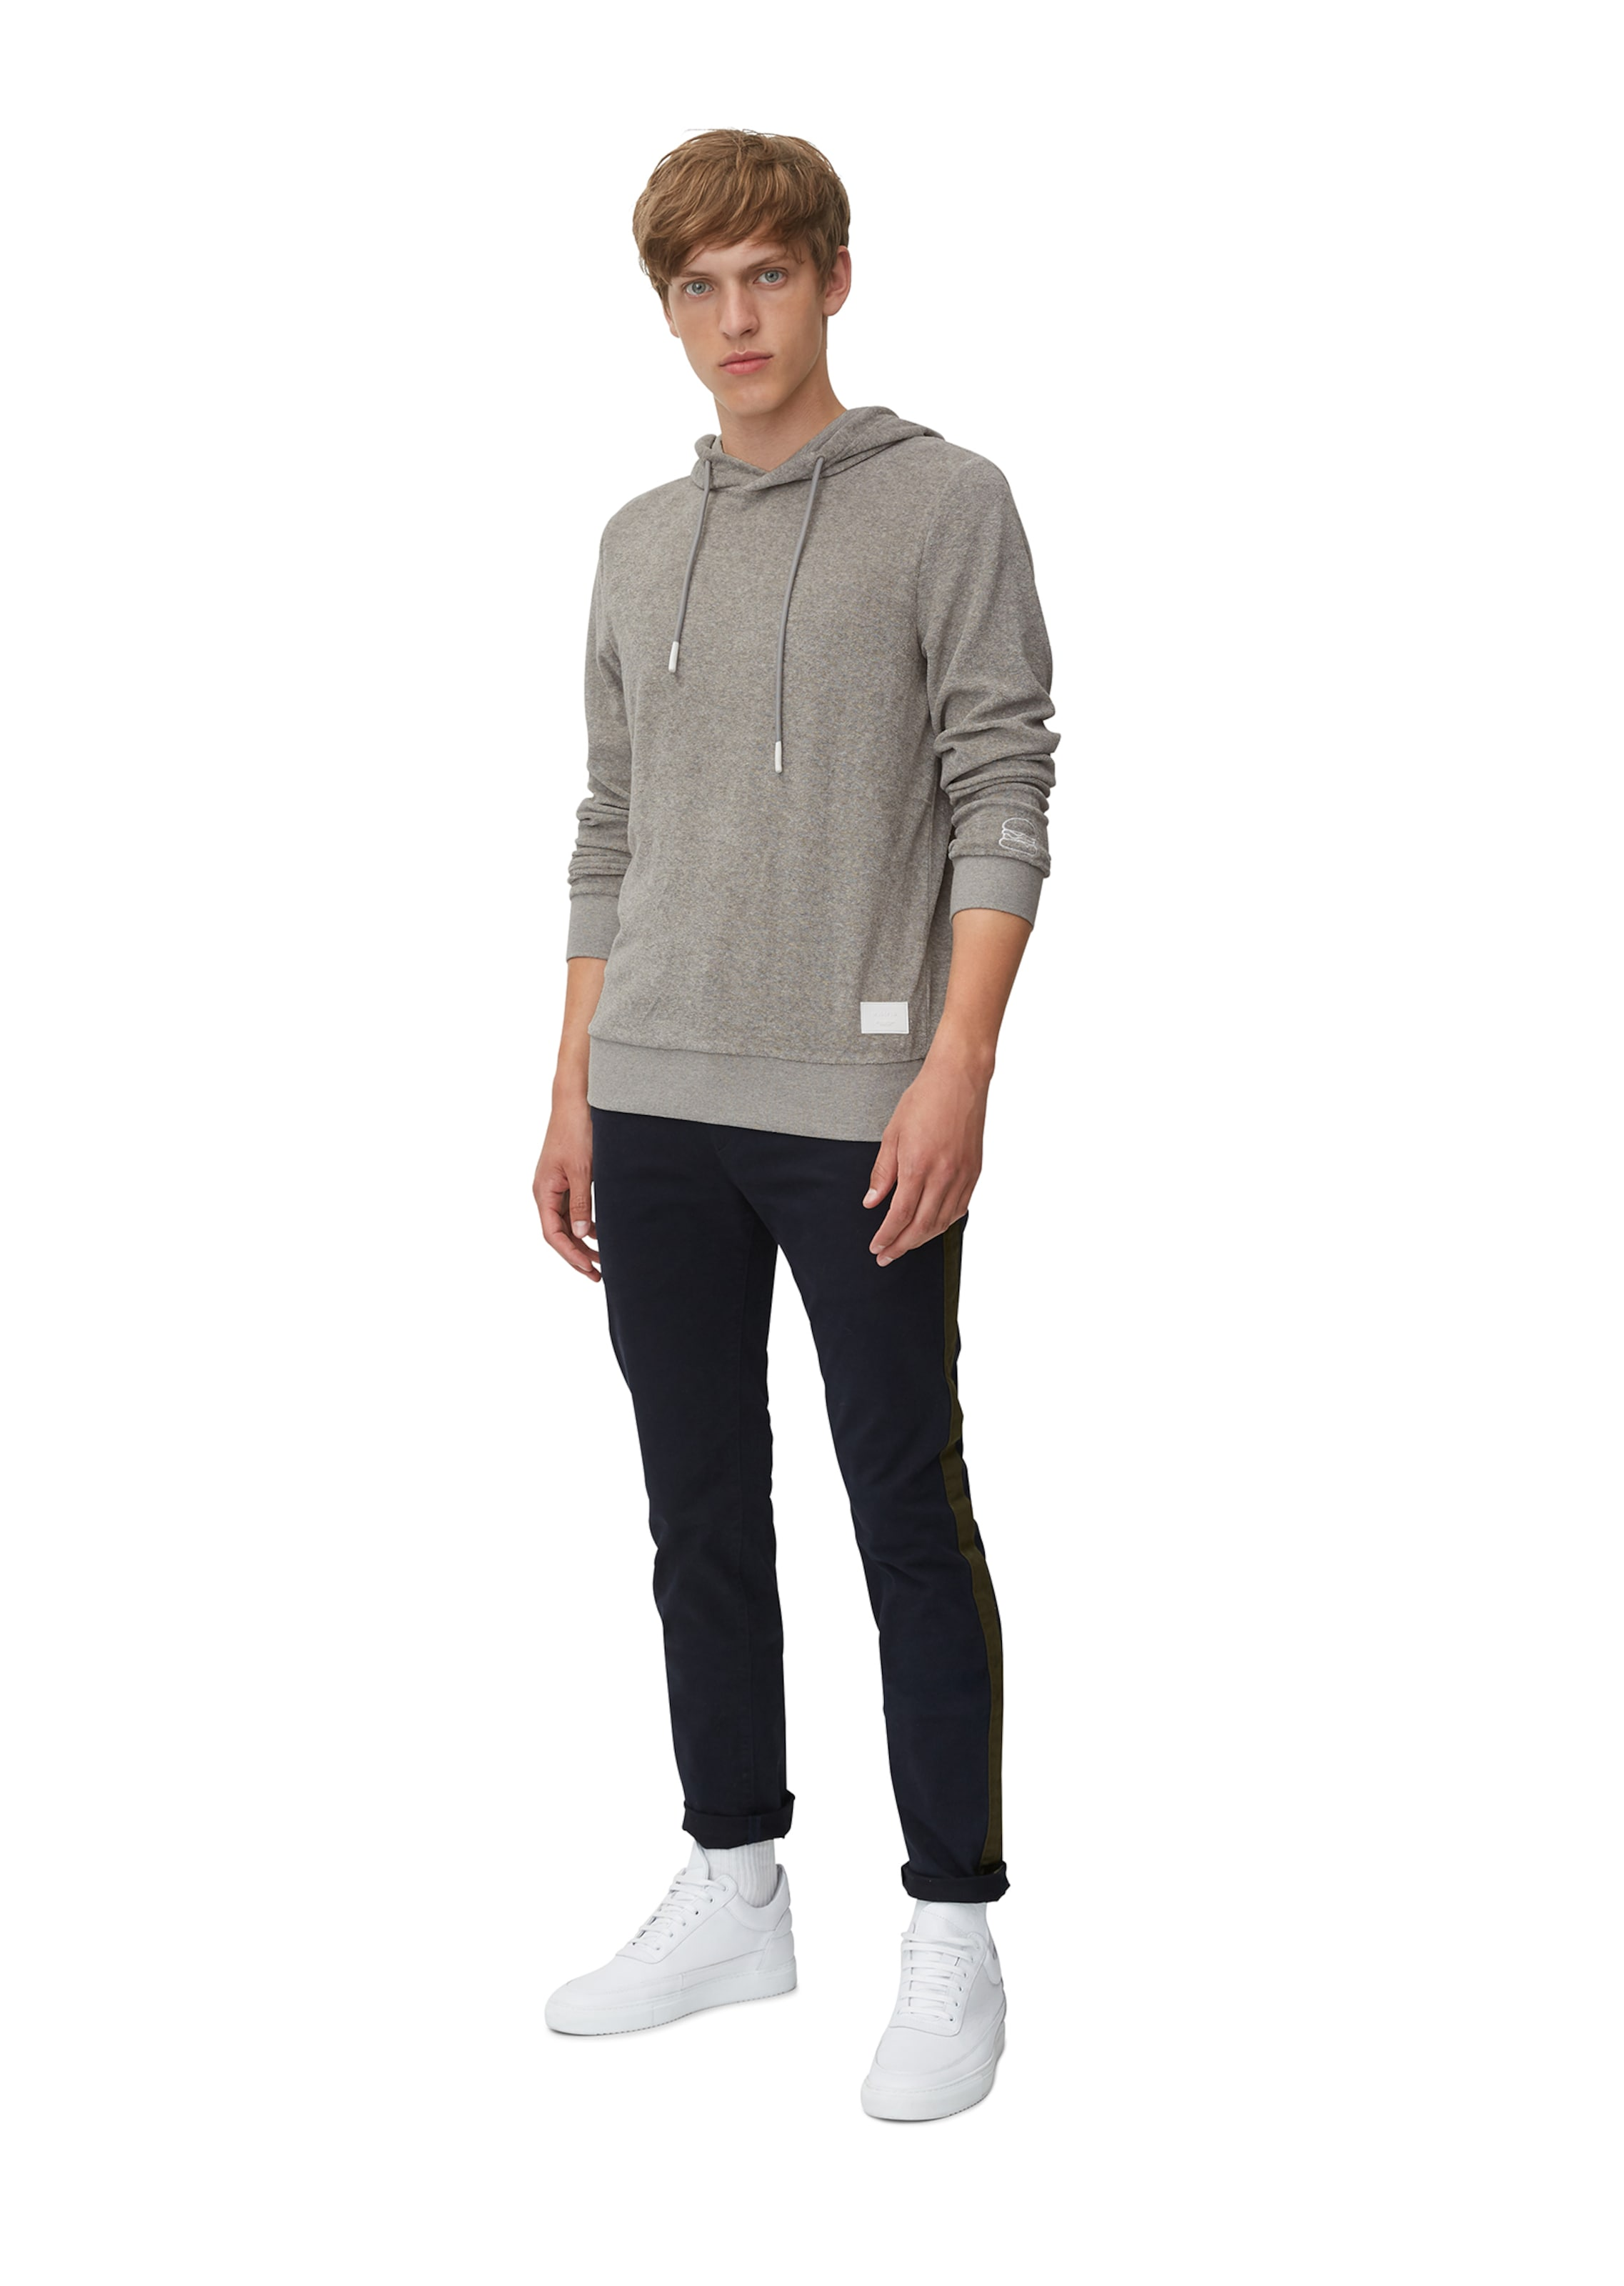 In Denim Hoodie O'polo Taupe Marc Yy7fgbv6